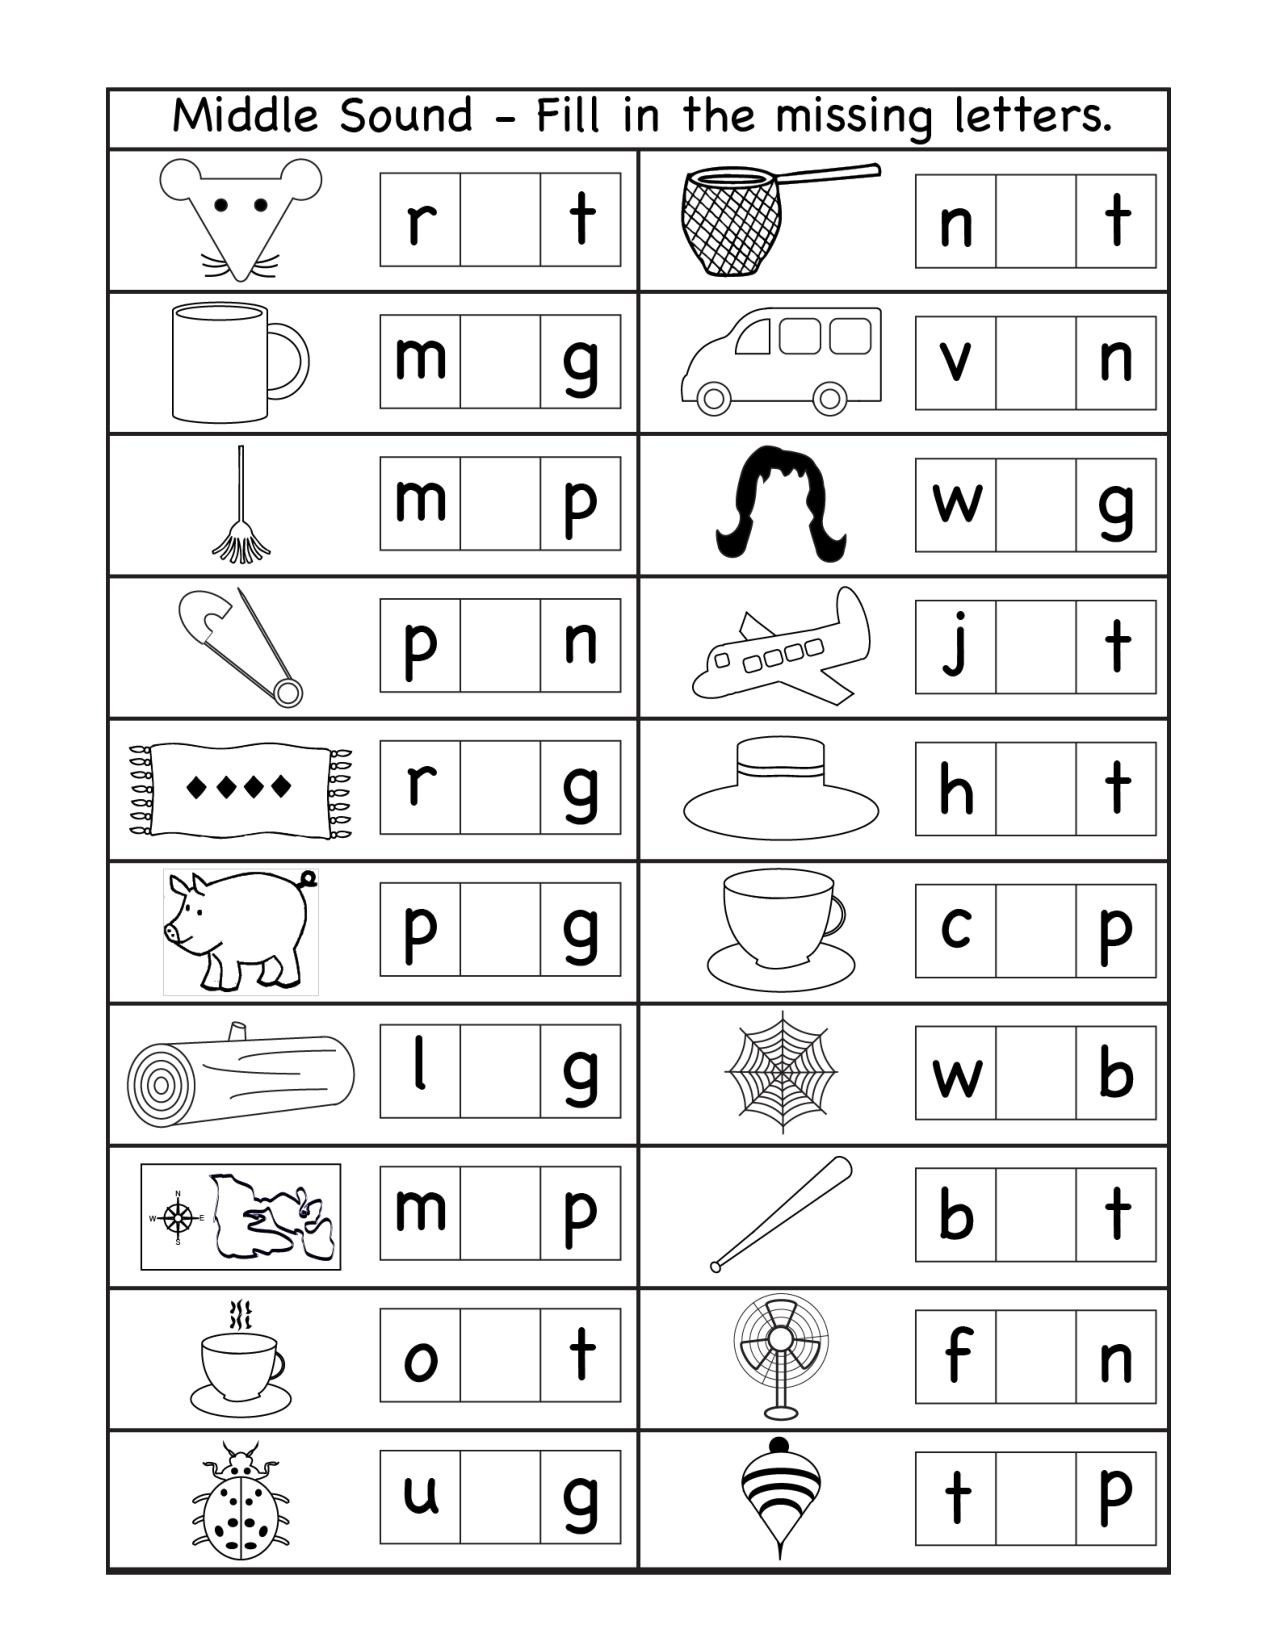 Middle sound Worksheets Middle sound Archives